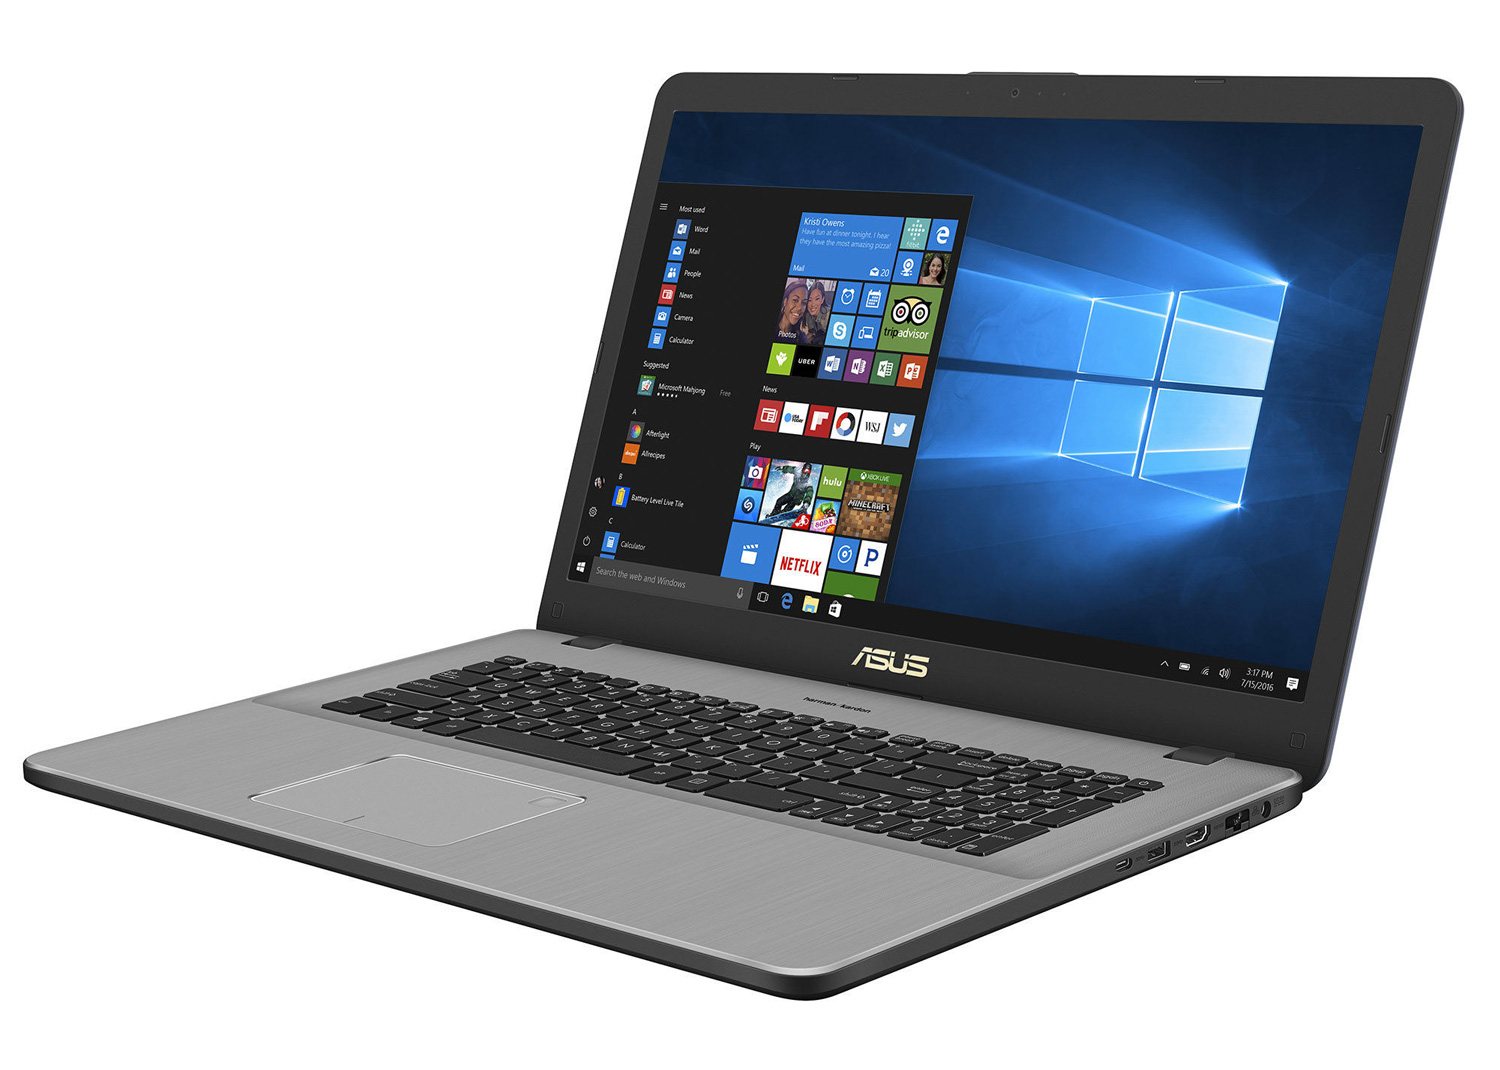 asus vivobook pro 17 n705ud gc105t achetez au meilleur prix. Black Bedroom Furniture Sets. Home Design Ideas